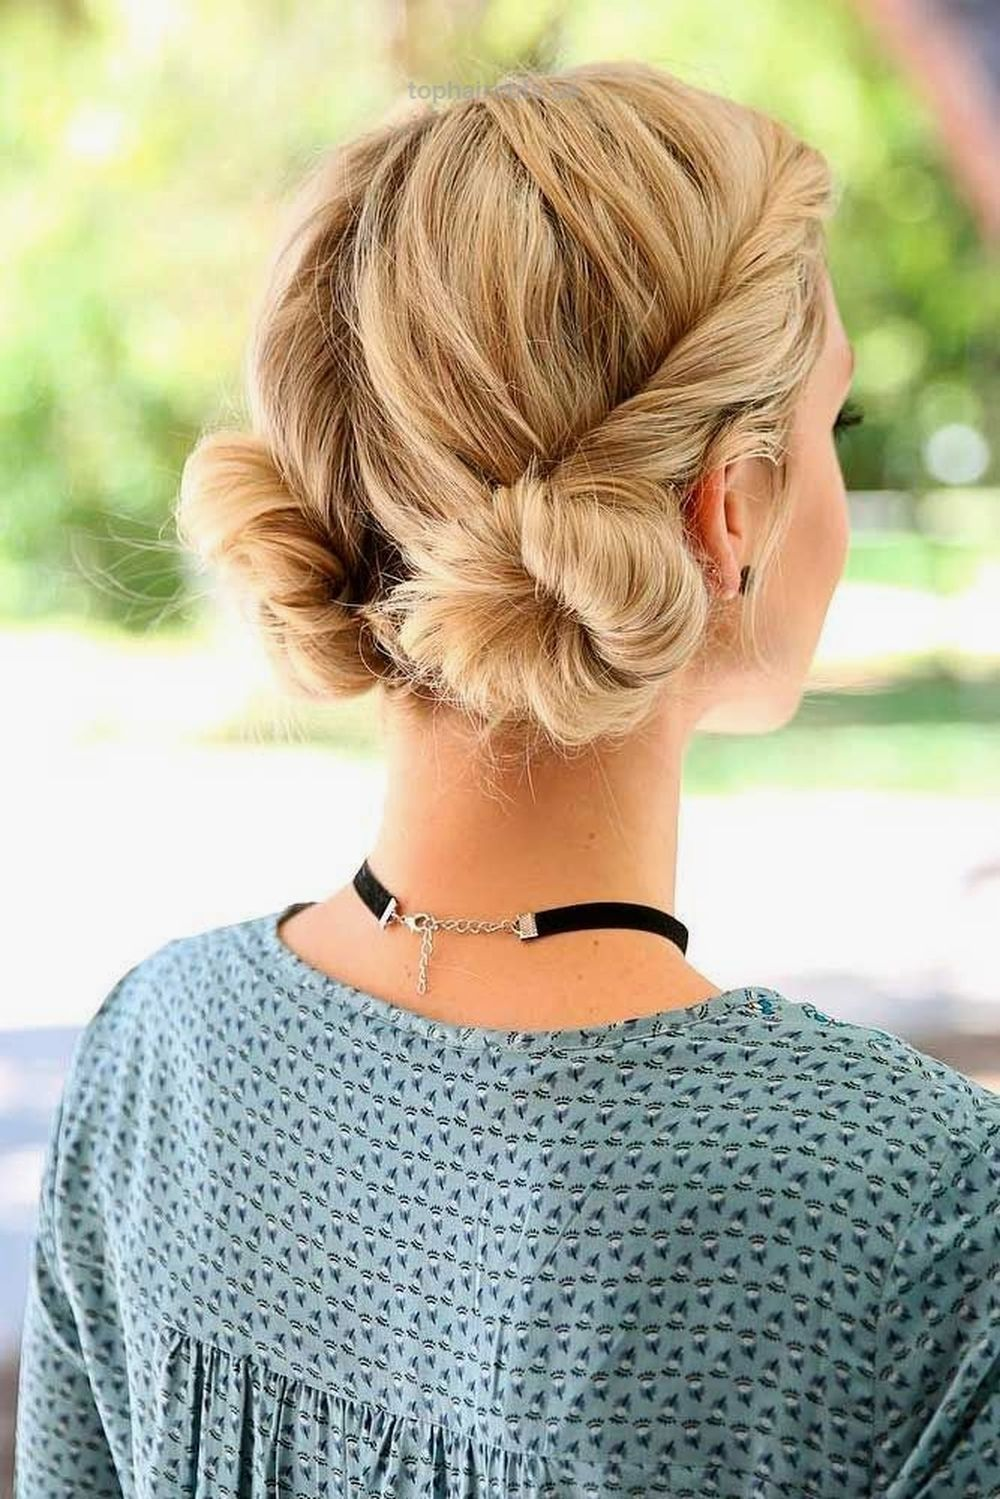 Pin by jennifer baum on drinks pinterest easy hairstyles up dos